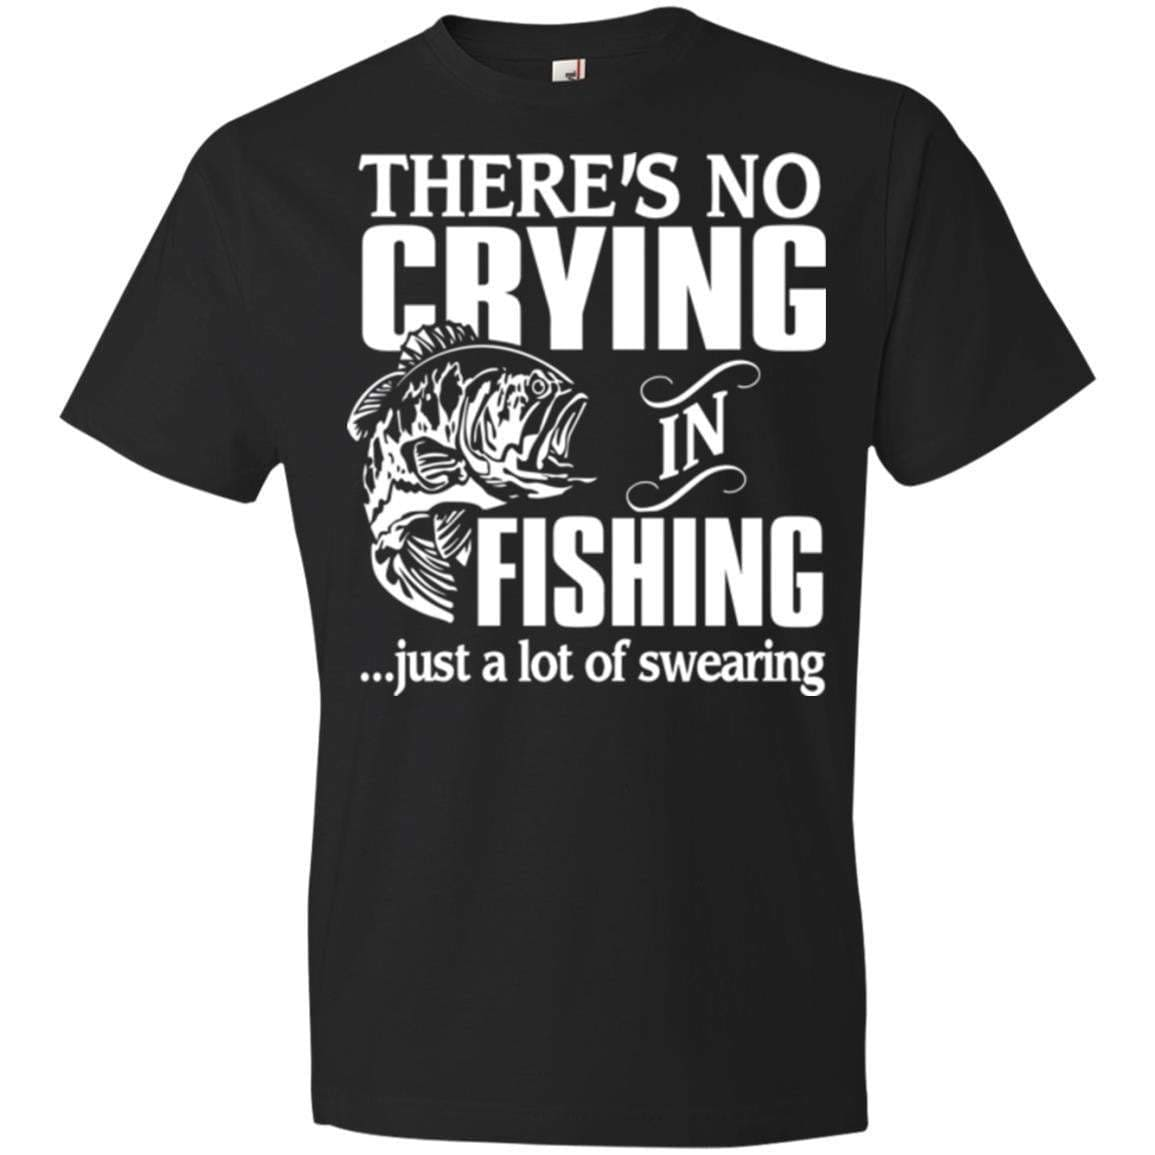 No Crying In Fishing